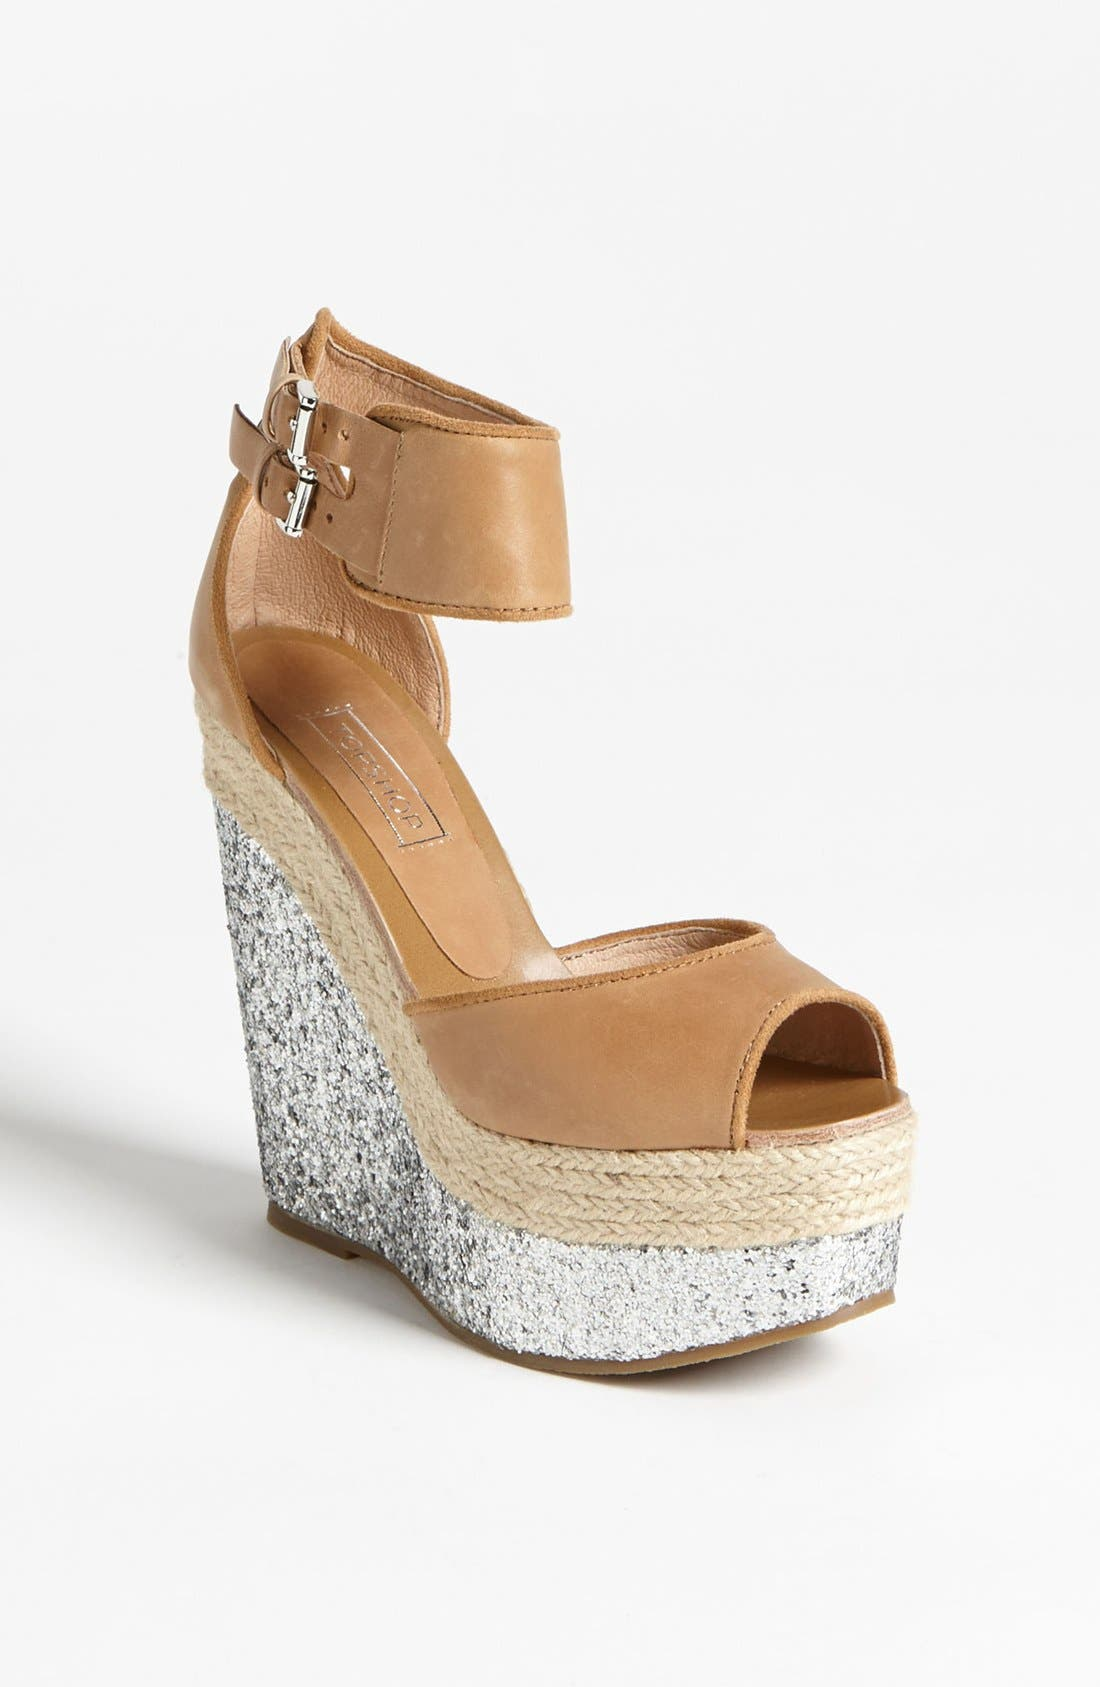 Alternate Image 1 Selected - Topshop 'Whirlwind' Espadrille Wedge Sandal